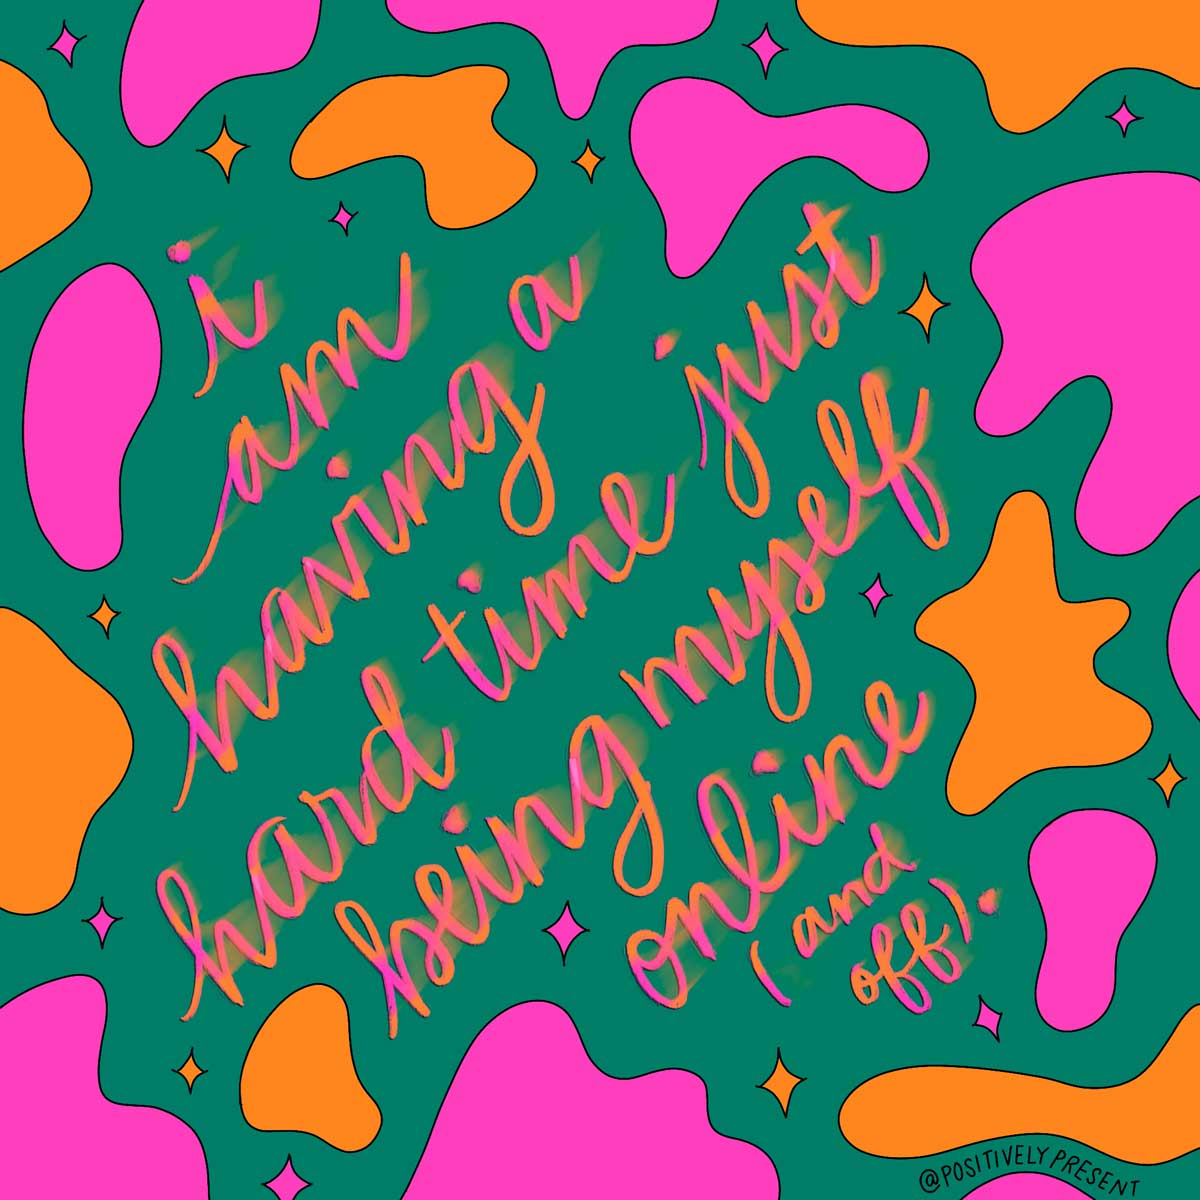 having a hard time being myself online quote on pink orange green art.